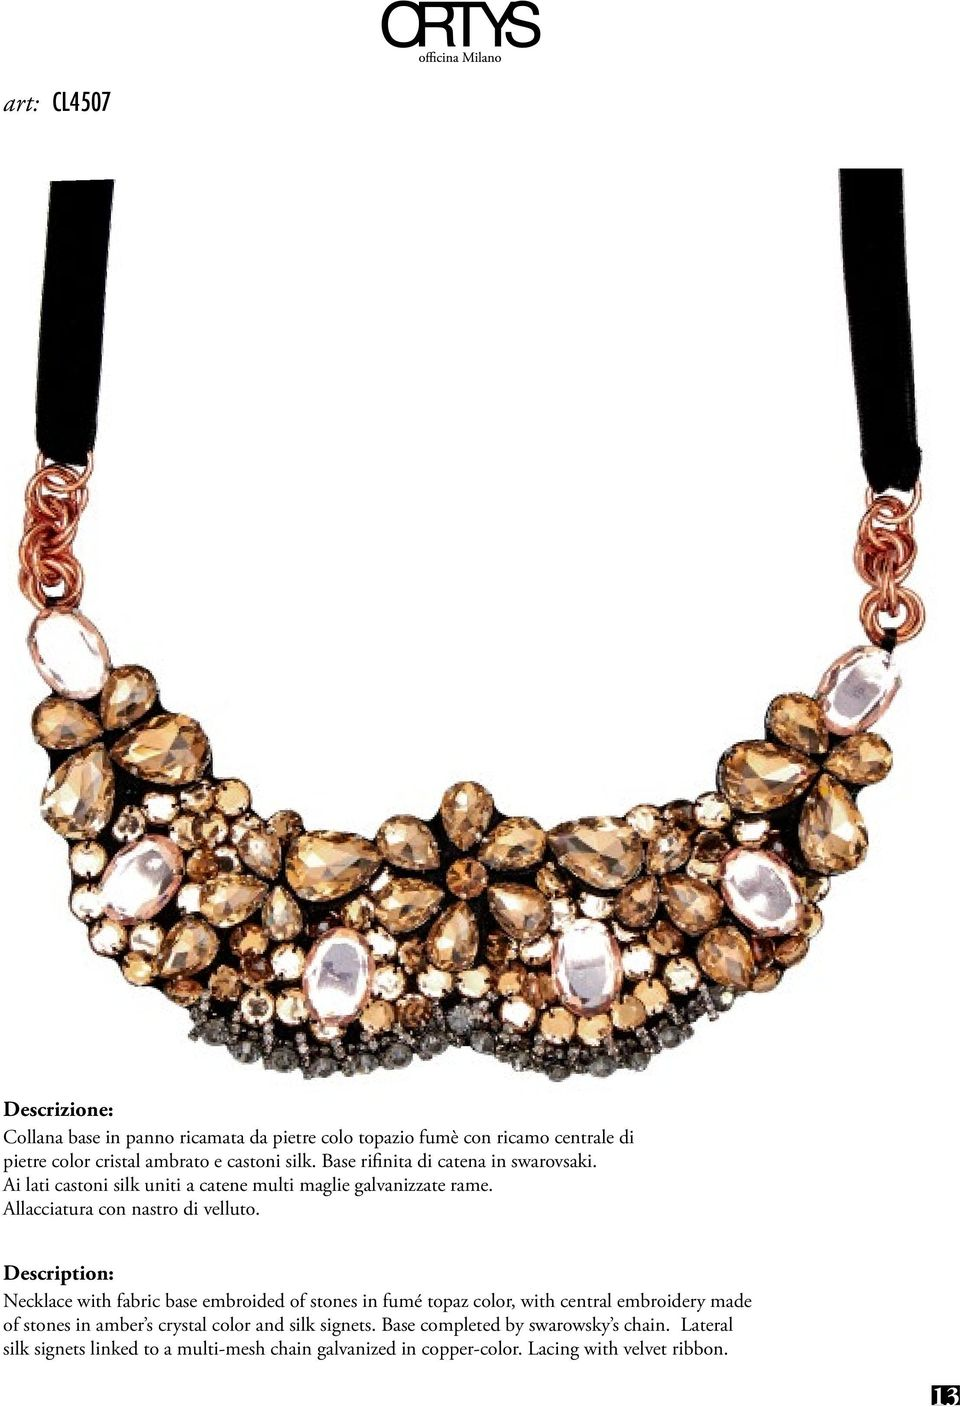 Necklace with fabric base embroided of stones in fumé topaz color, with central embroidery made of stones in amber s crystal color and silk